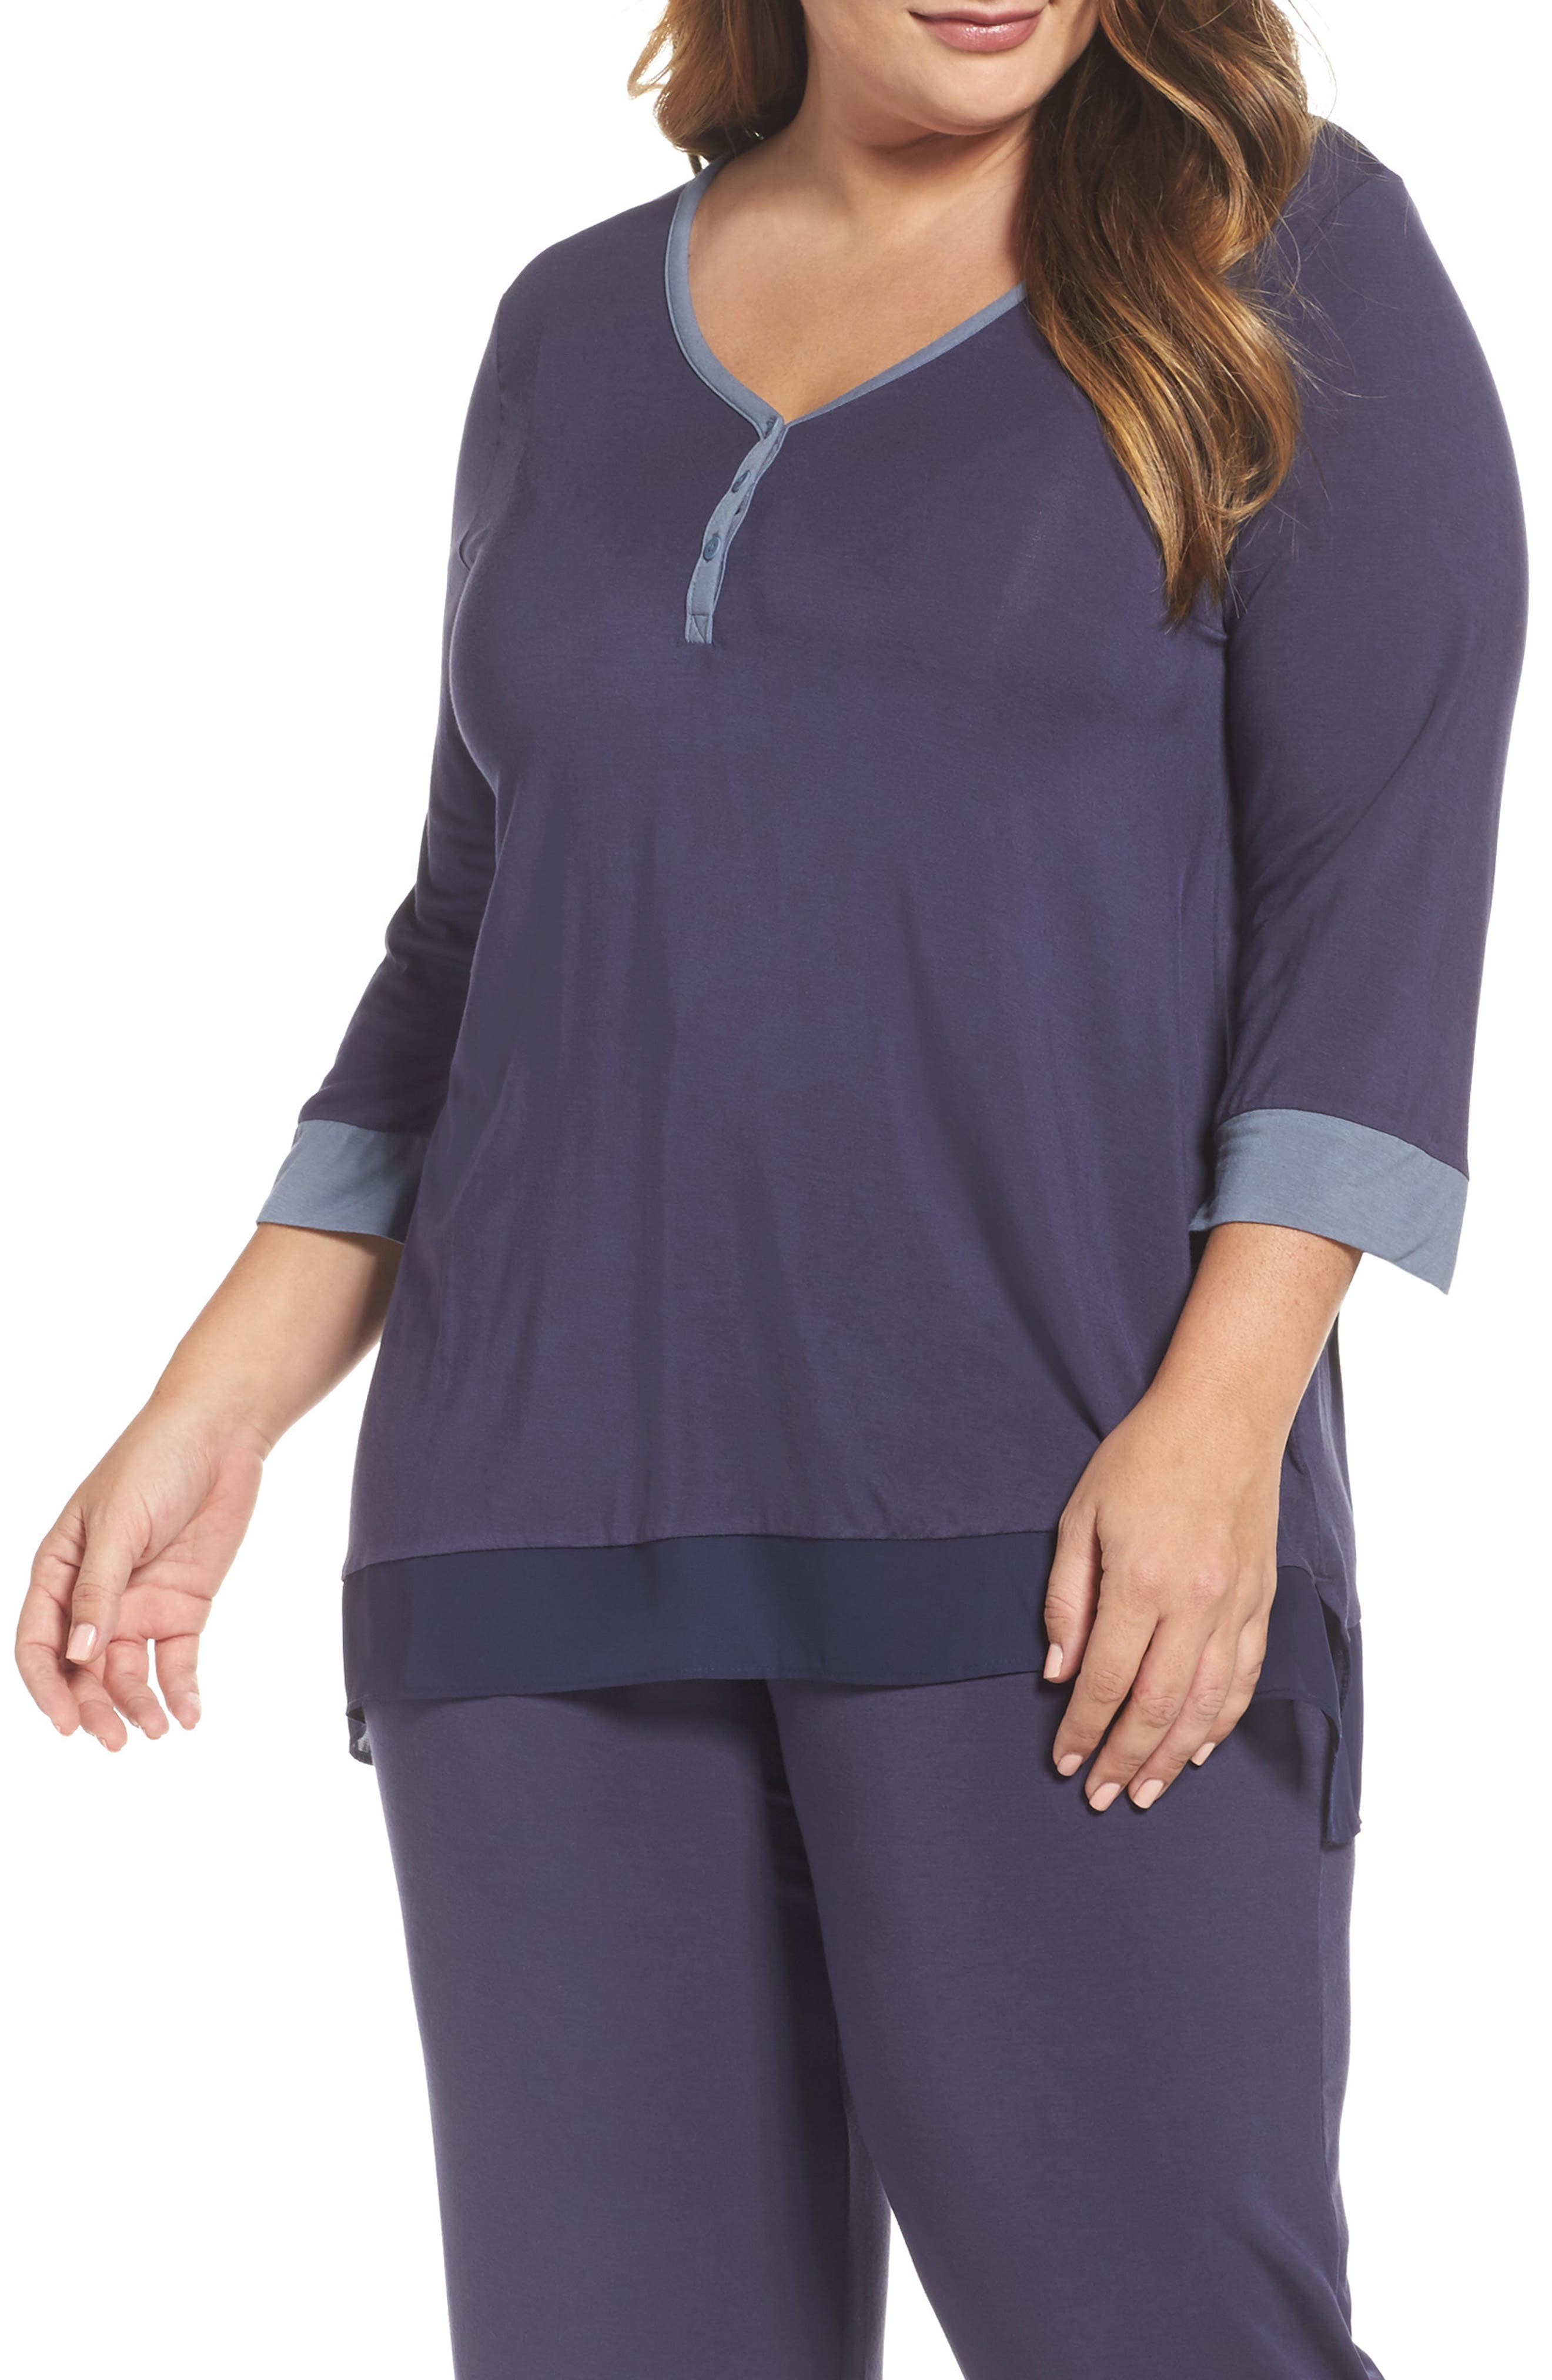 DKNY Stretch Modal Top (Plus Size)